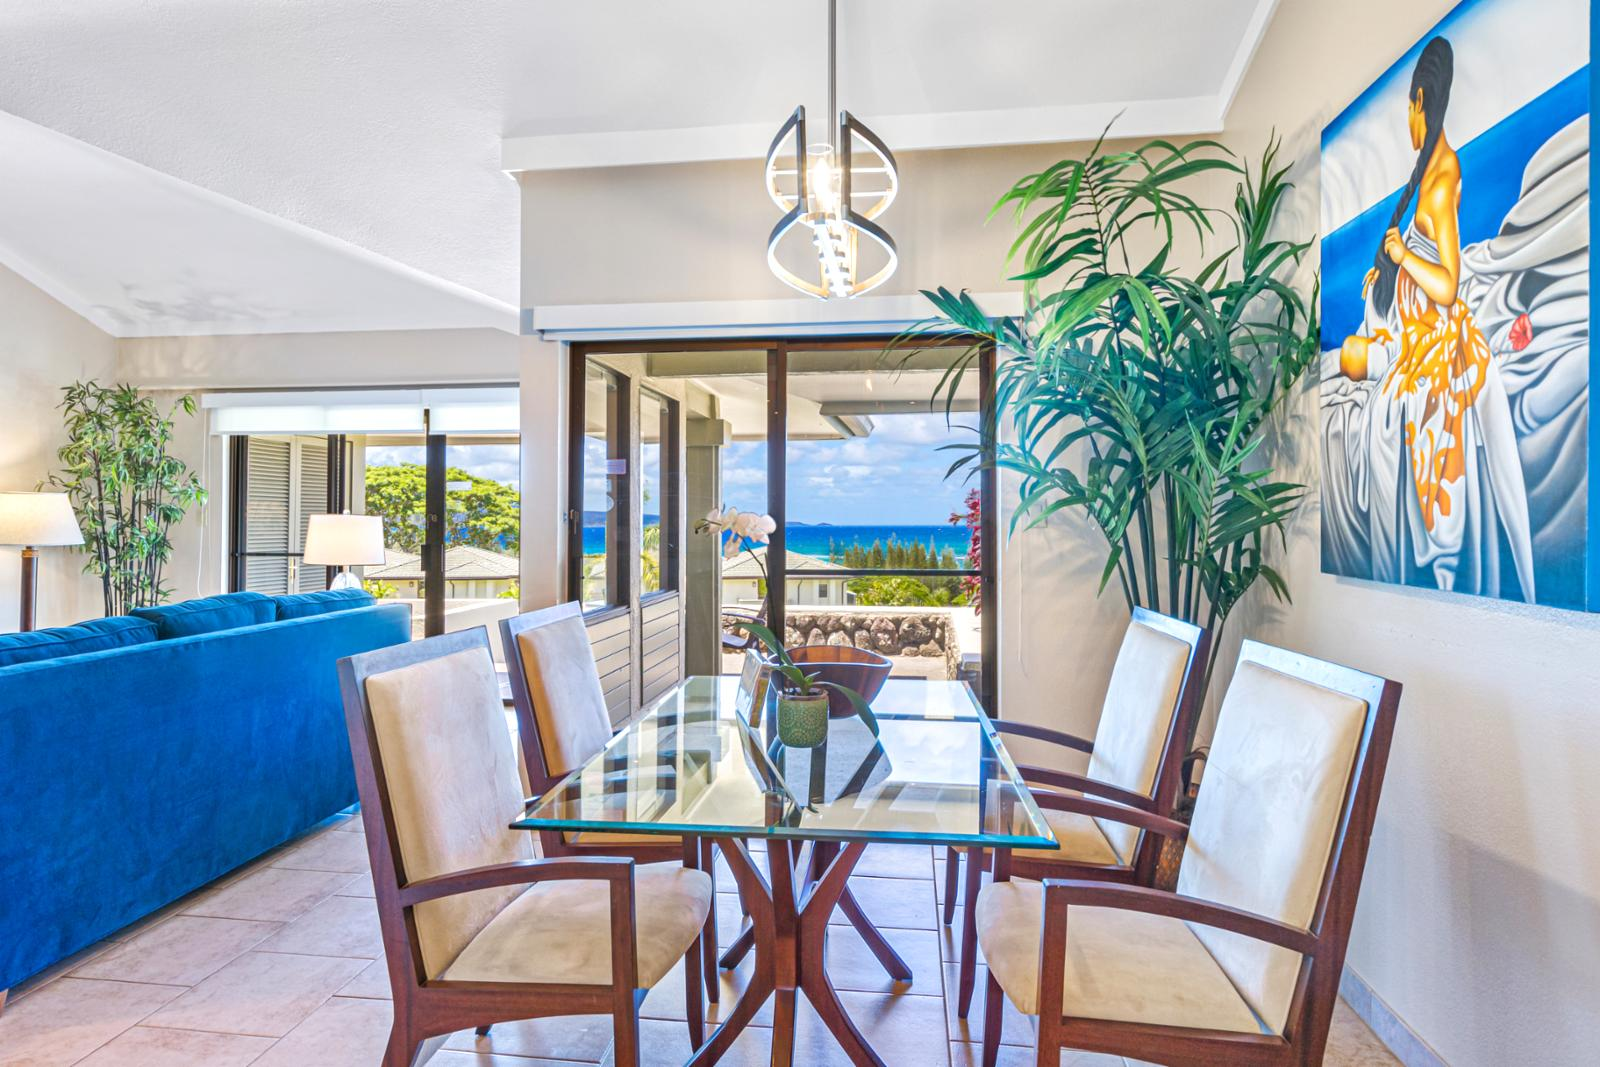 Enjoy the views while eating meals indoors!